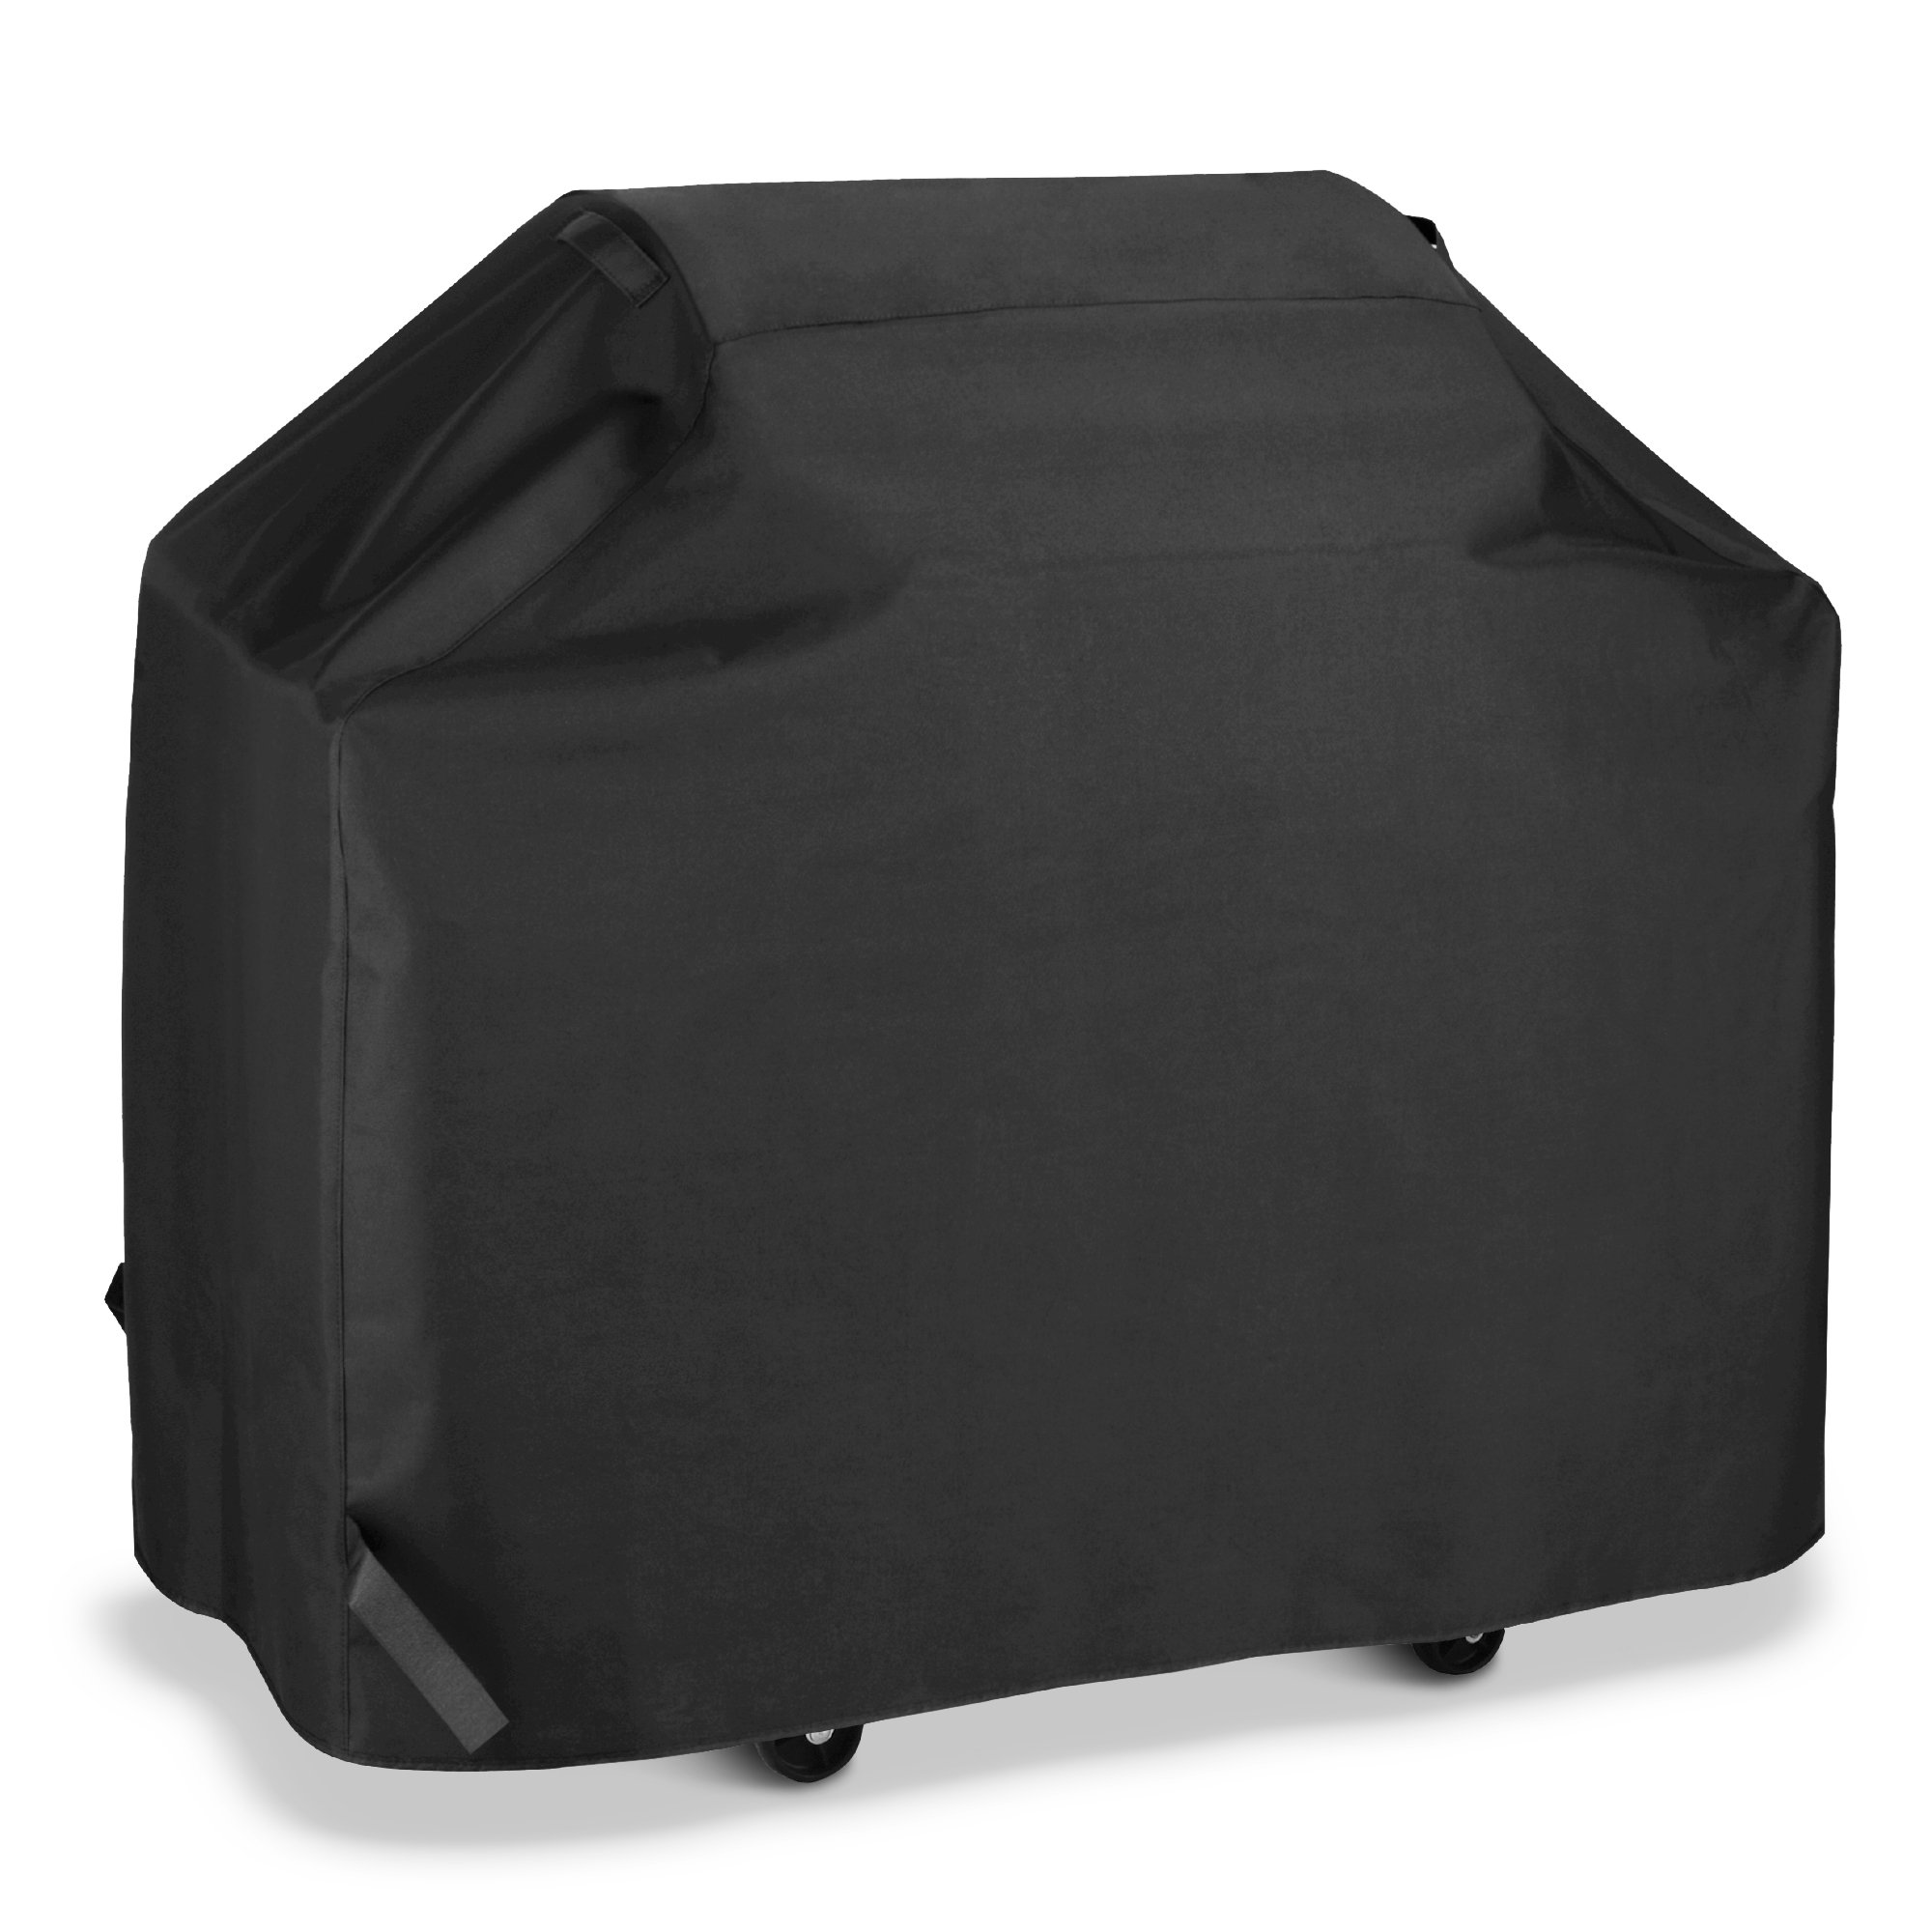 SunPatio BBQ Grill Cover 55 Inch, Outdoor Heavy Duty Waterproof Barbecue Gas Grill Cover, UV and Fade Resistant, All Weather Protection for Weber Char-Broil Nexgrill Grills and More, Black